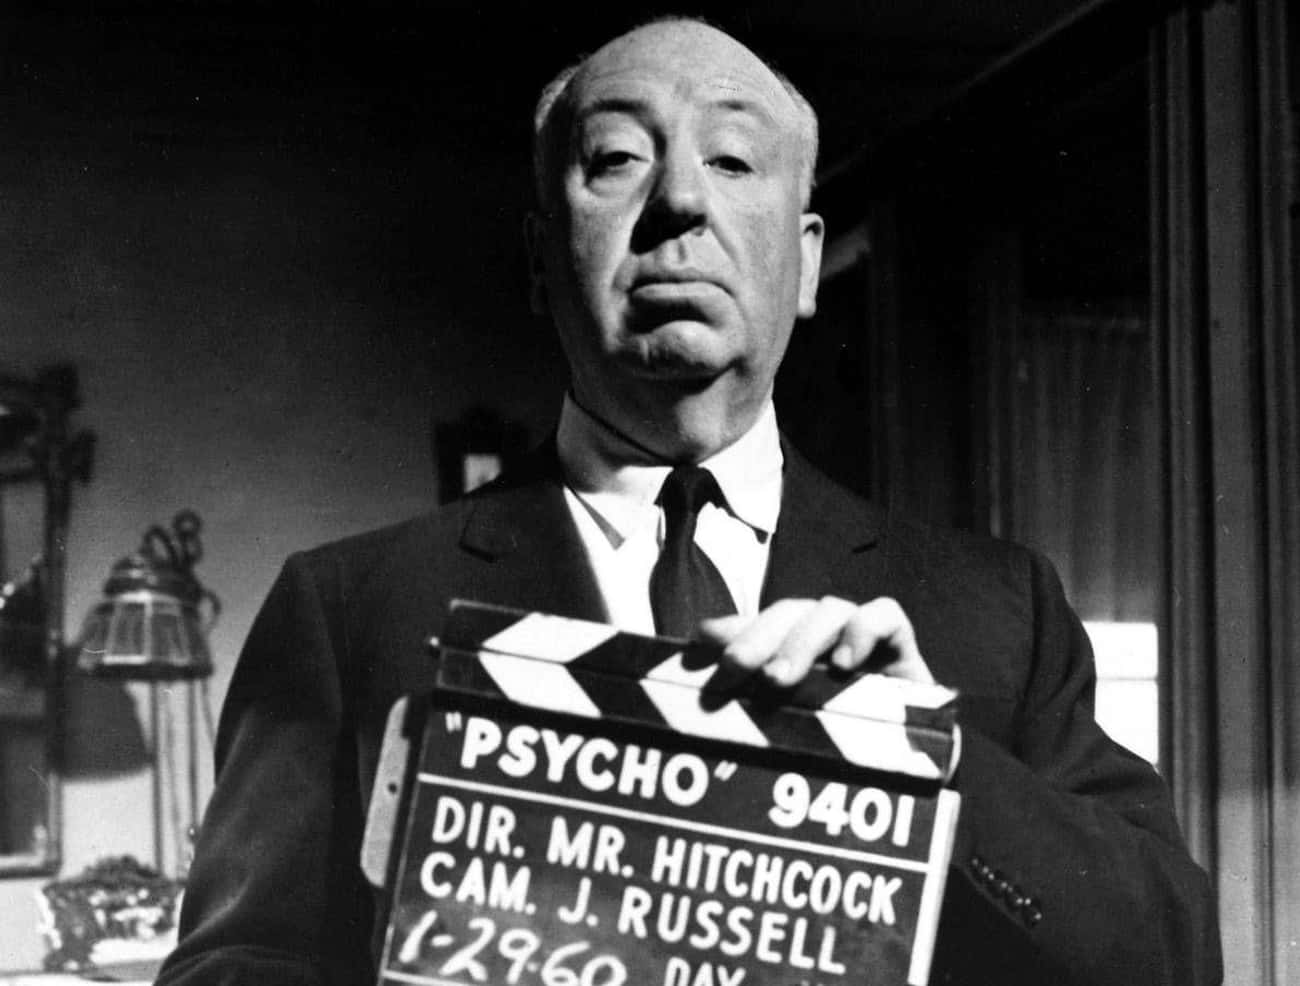 He Had A Demented Sense Of Hum is listed (or ranked) 3 on the list 15 Extremely Bizarre Things Most People Don't Know About Alfred Hitchcock